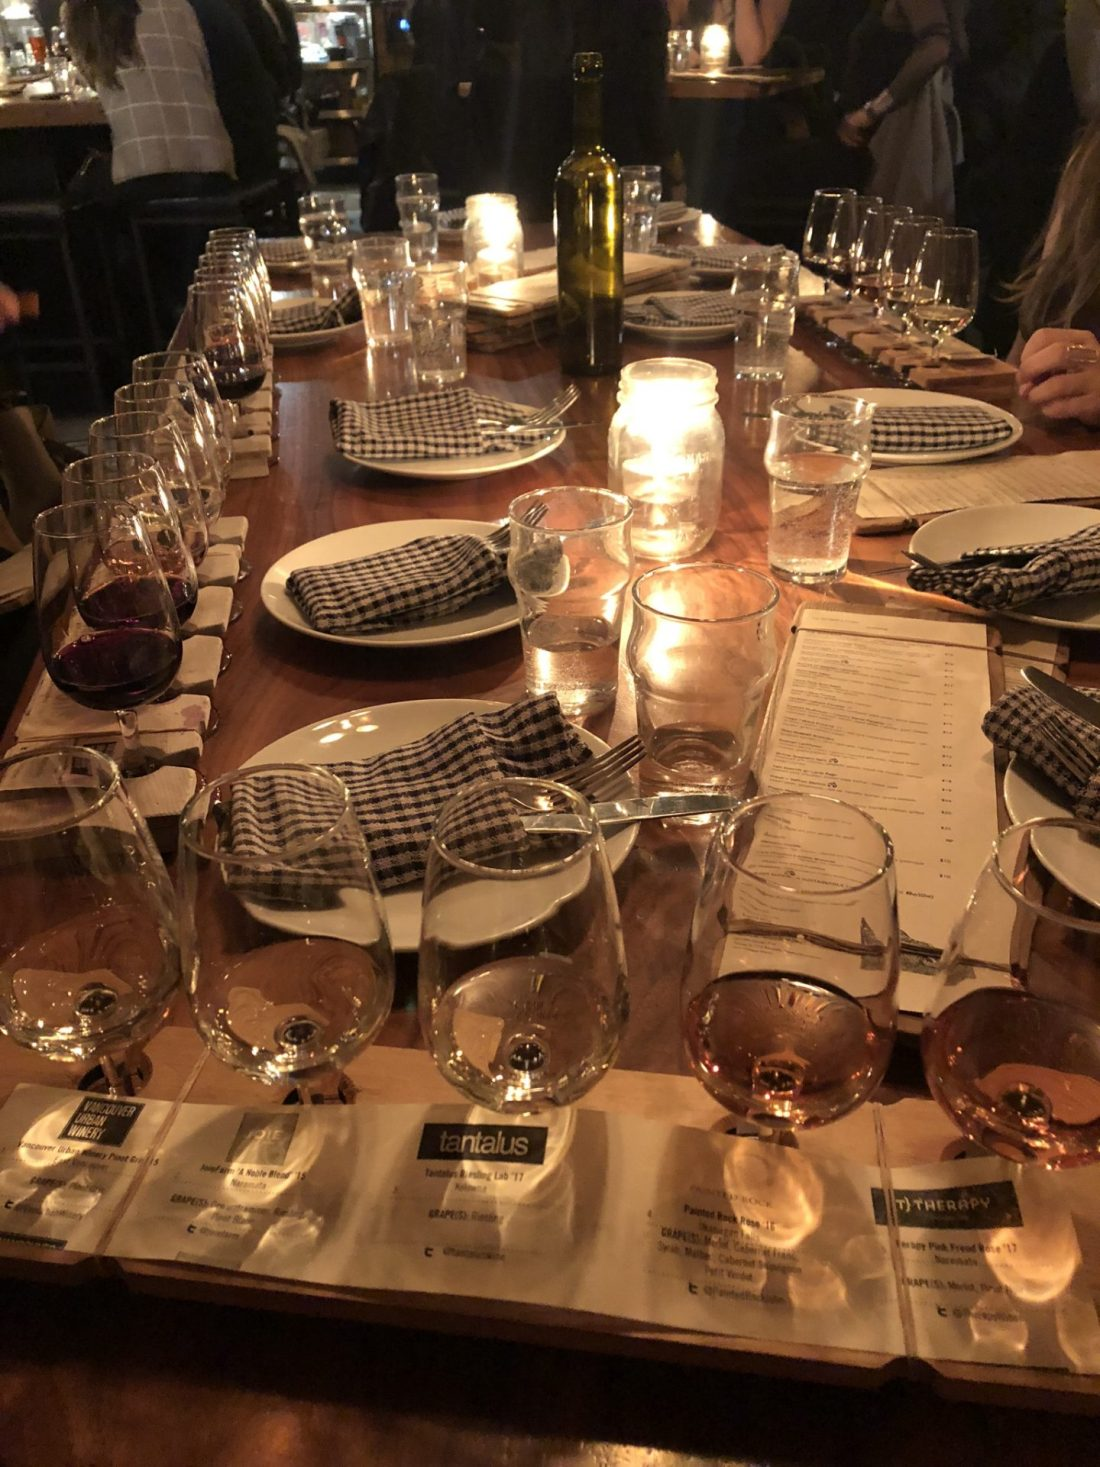 Belgard Kitchen wine flights